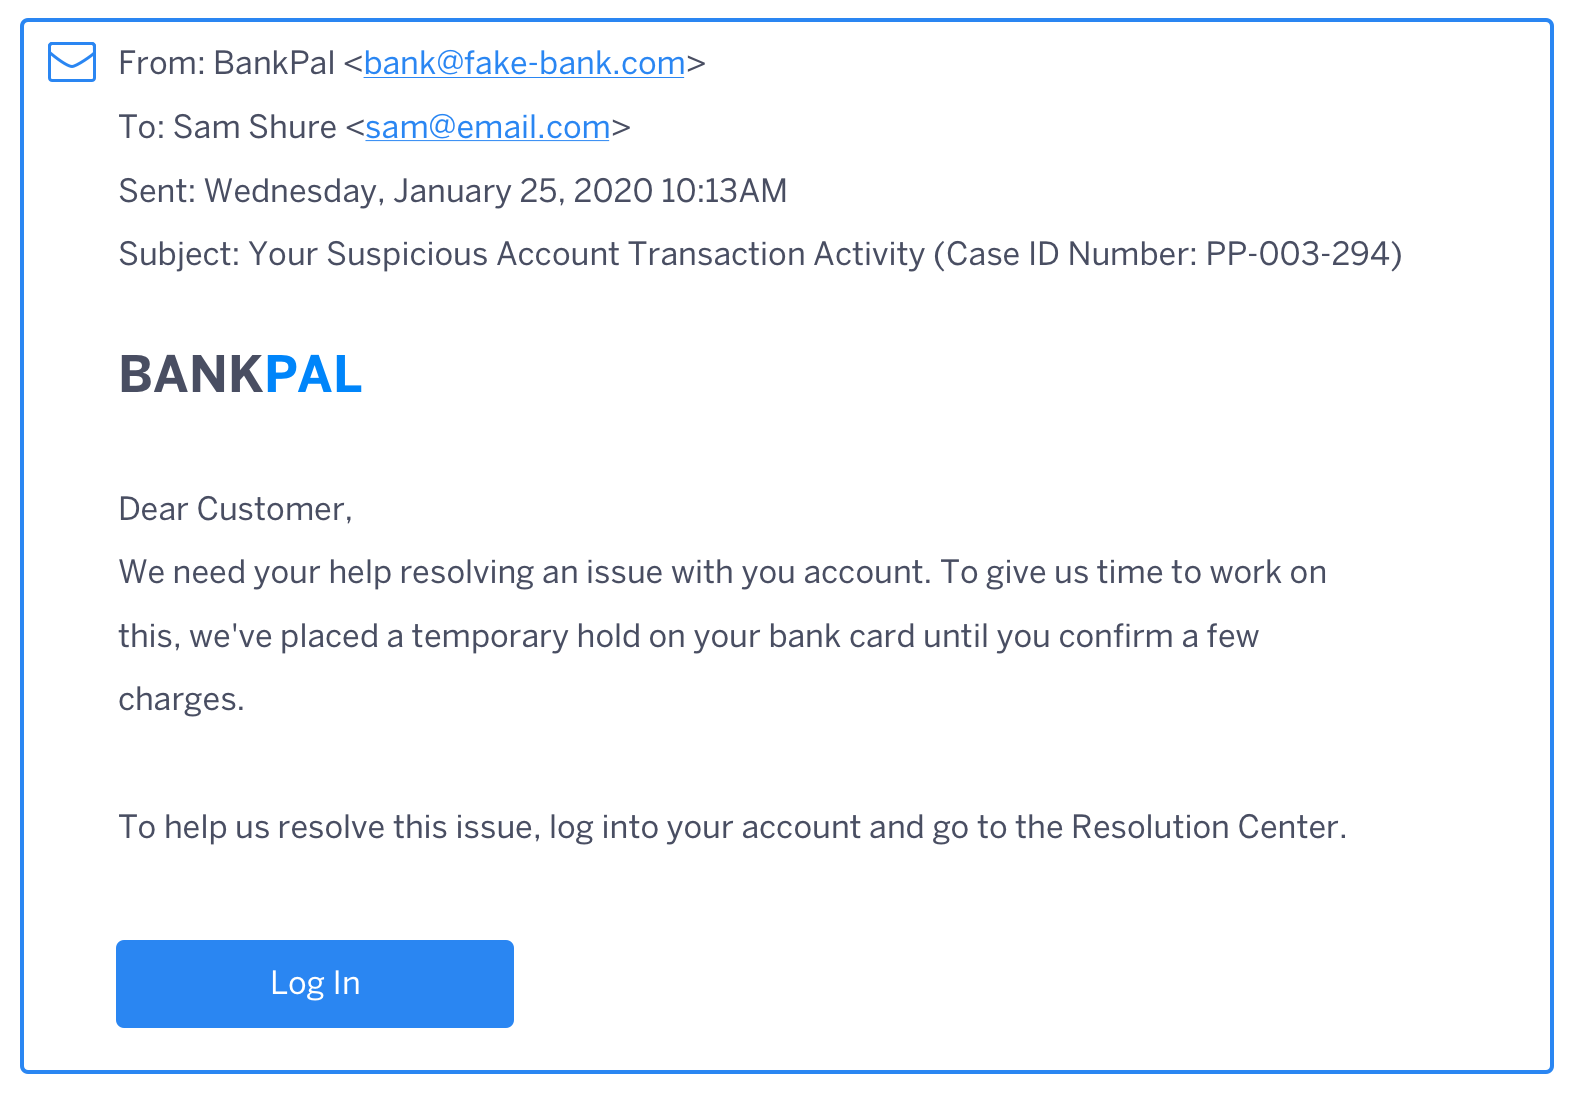 BankPal Cross-Forgery Email